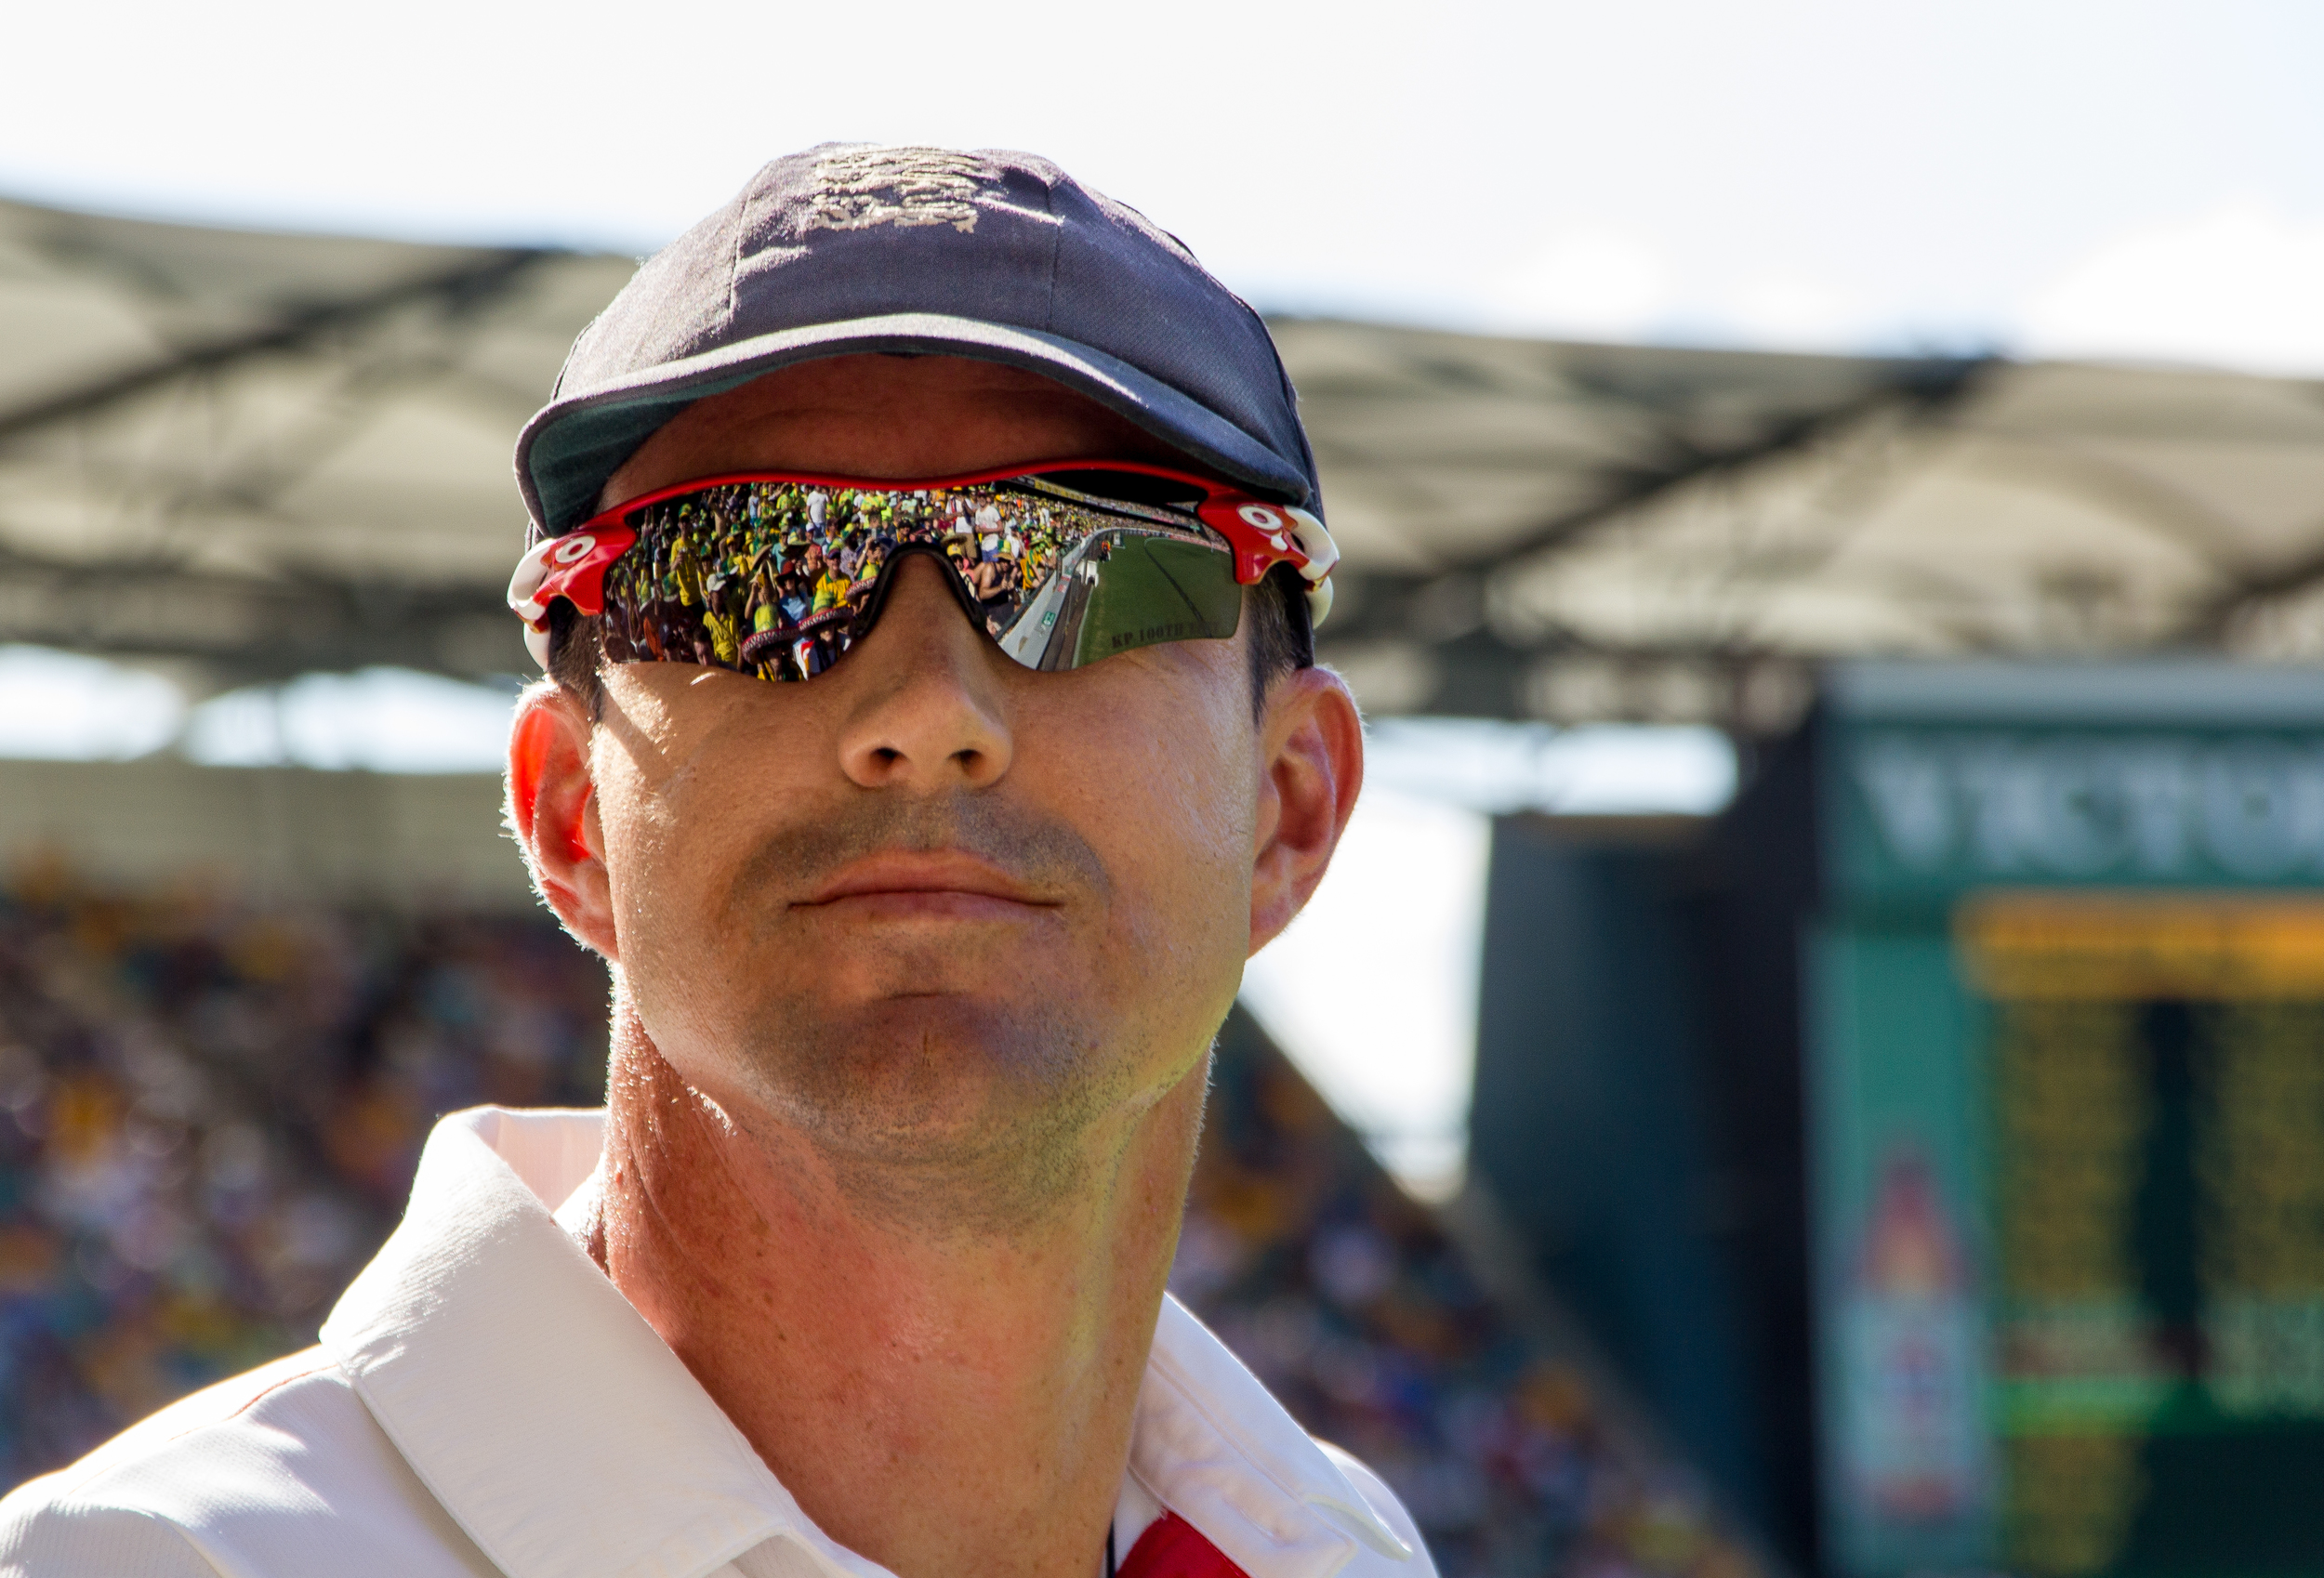 Kevin Pietersen is one of the most gifted cricketers around. Unfortunately, as is often the case with talented athletes, his off-field behaviour has placed his position in the England national team in jeopardy. To date, his omission from the side still stands, and the debate between team unity and individual brilliance continues.